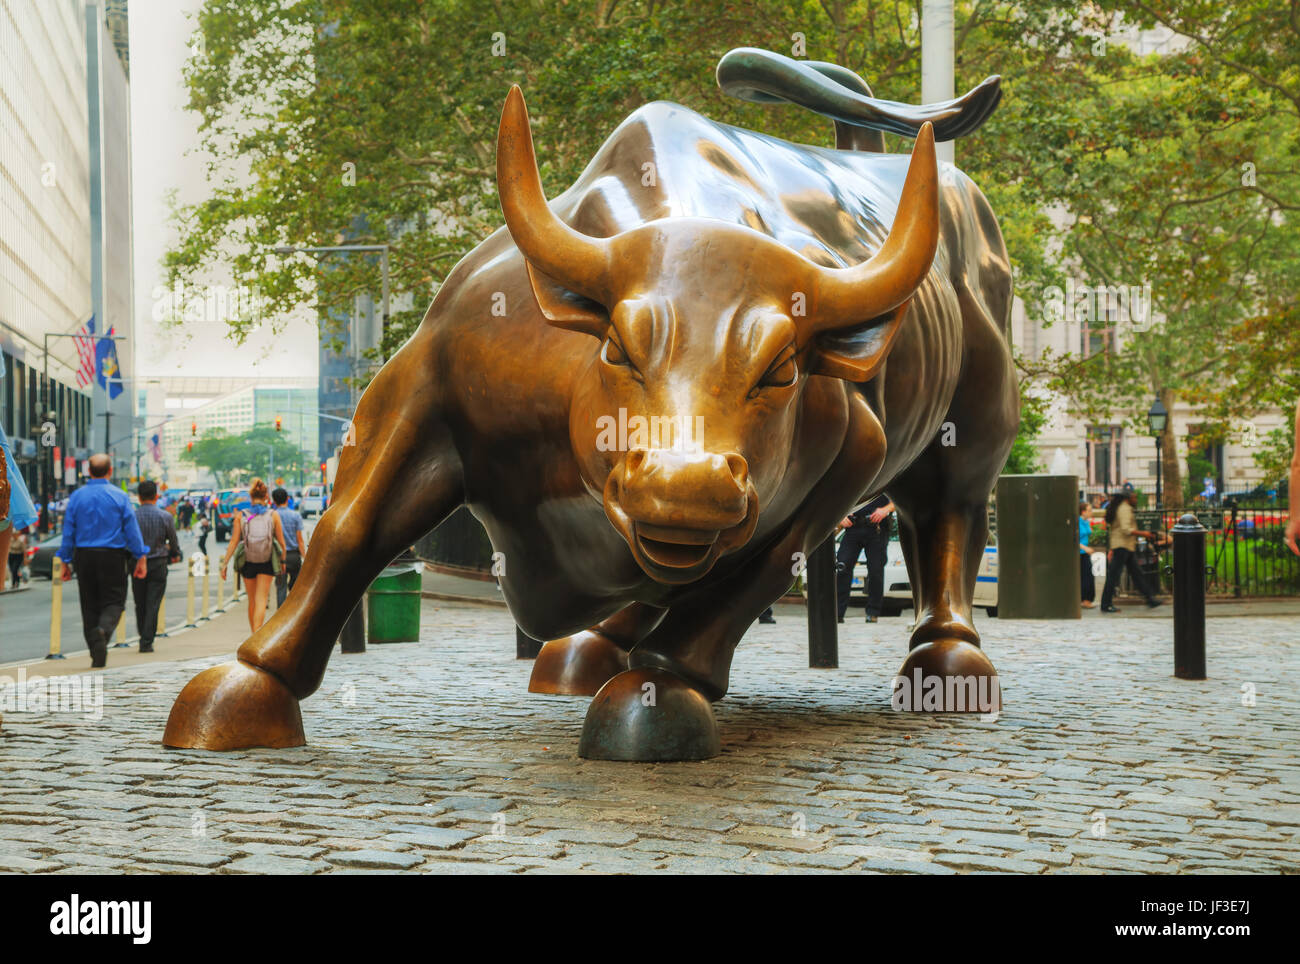 Charging Bull sculpture in New York City - Stock Image